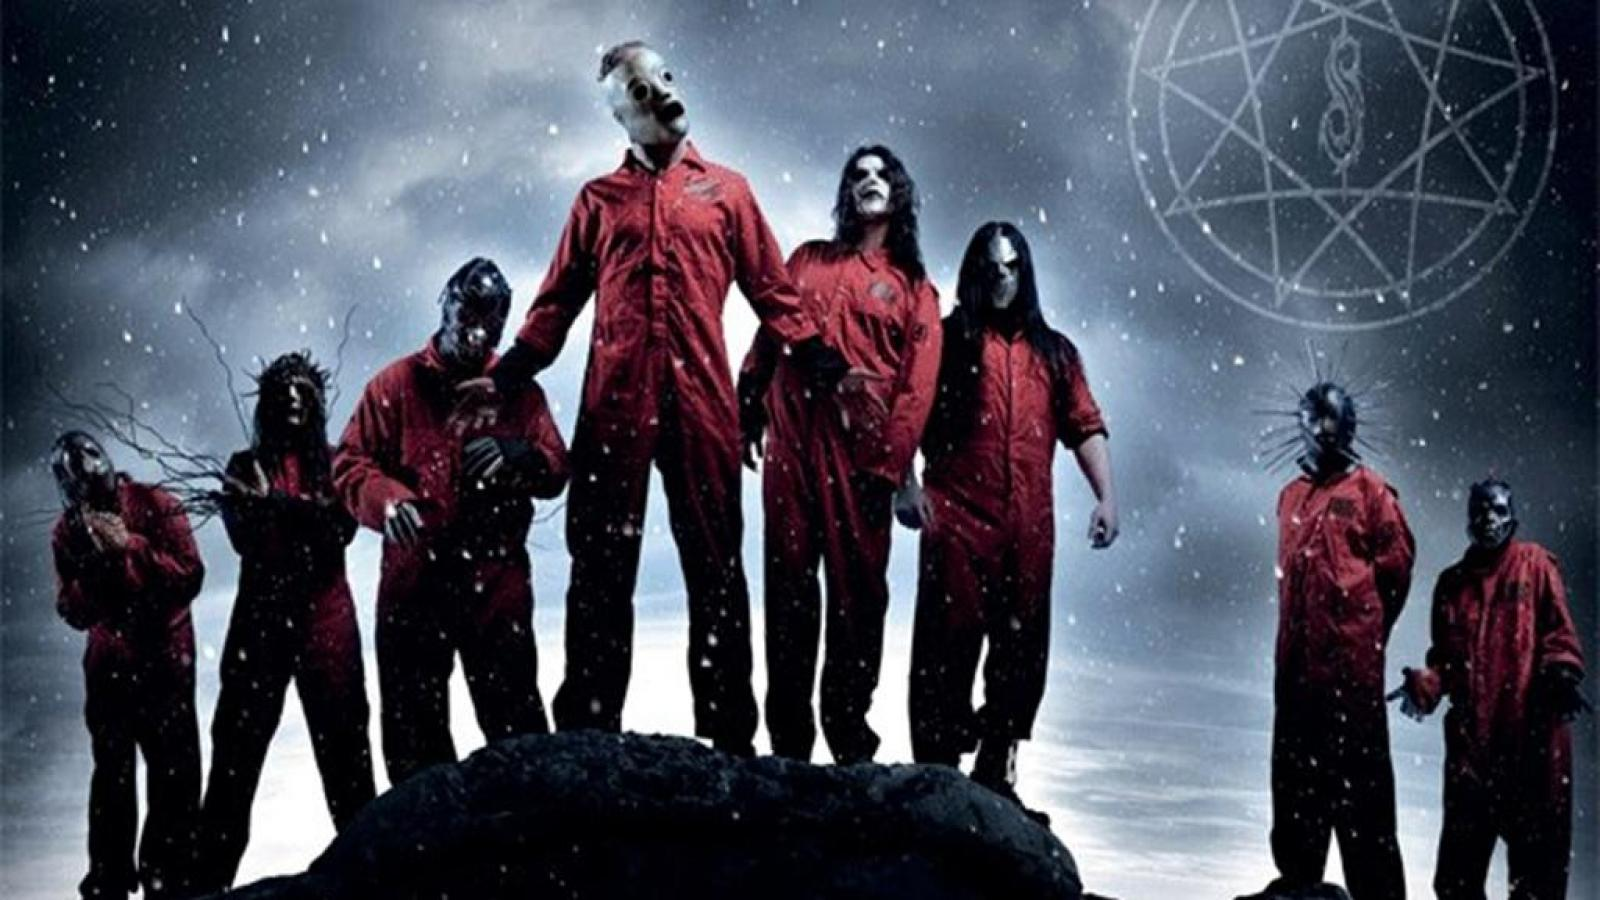 Slipknot   97545   High Quality and Resolution Wallpapers on 1600x900